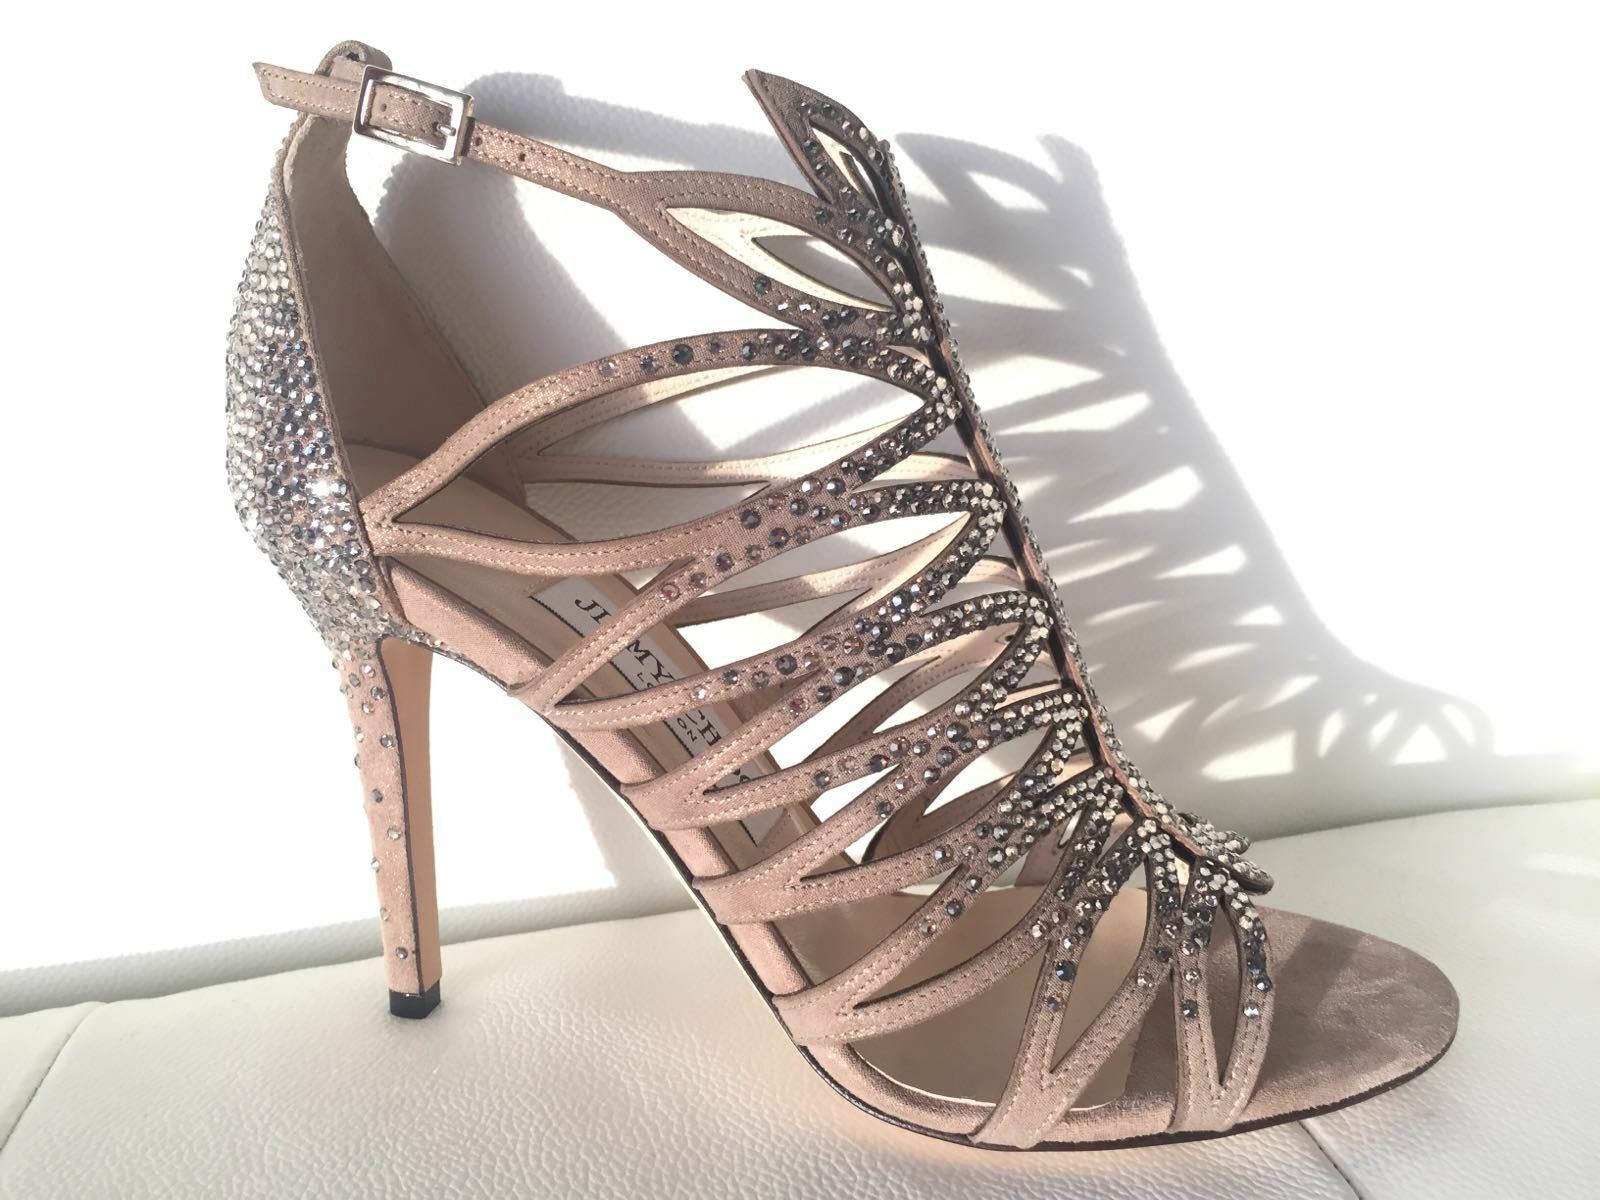 2350 JIMMY CHOO KAYE 100 BEIGE SUEDE LEATHER SANDALS W CRYSTALS SIZE 37 NIB